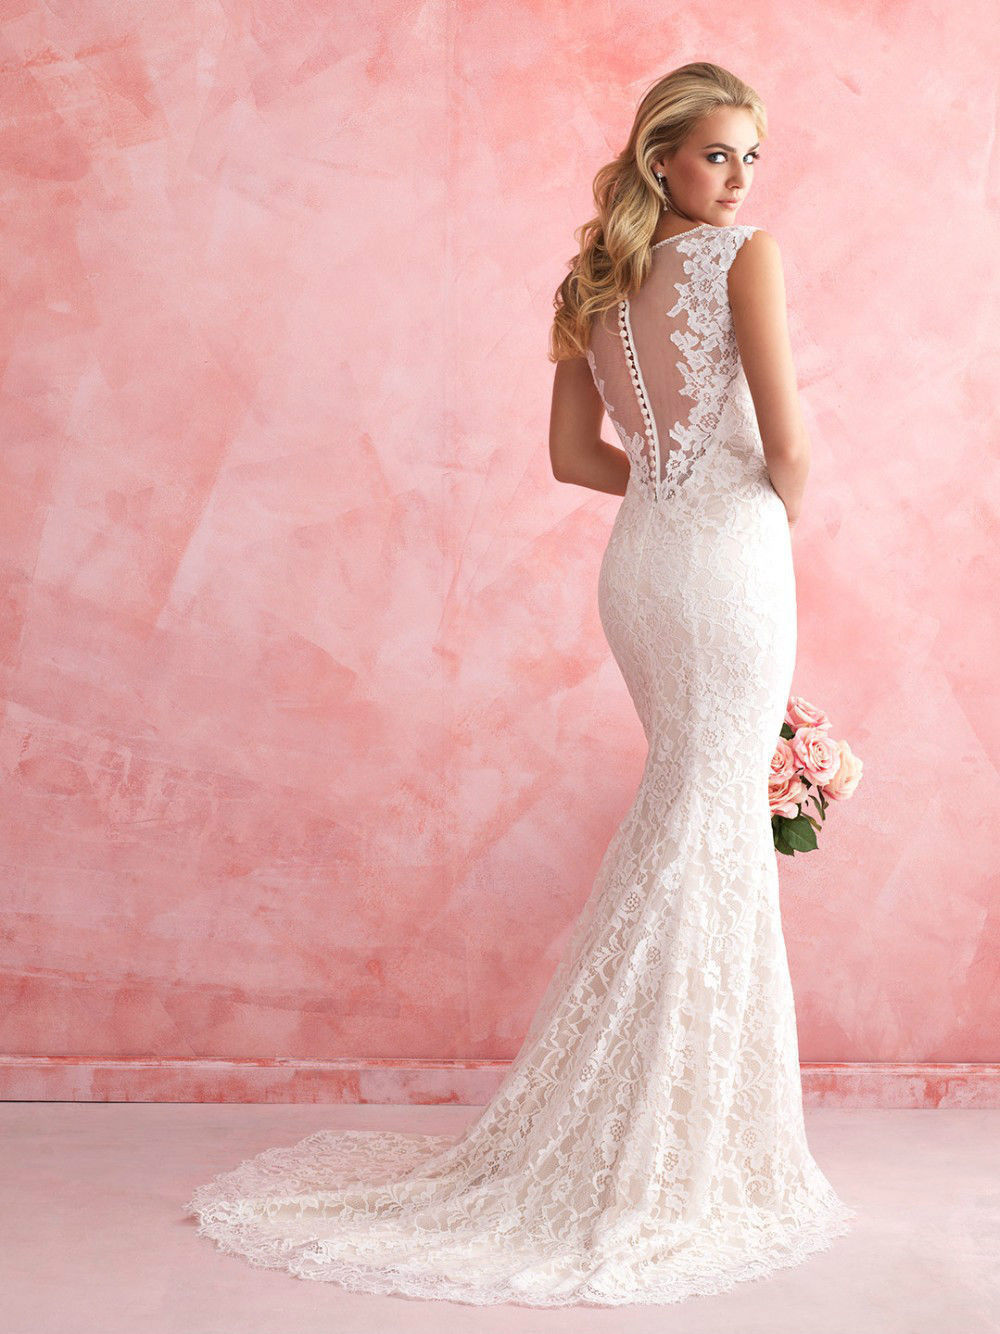 wedding dresses cold climates: My Dream Mermaid Wedding Dress 2015 ...